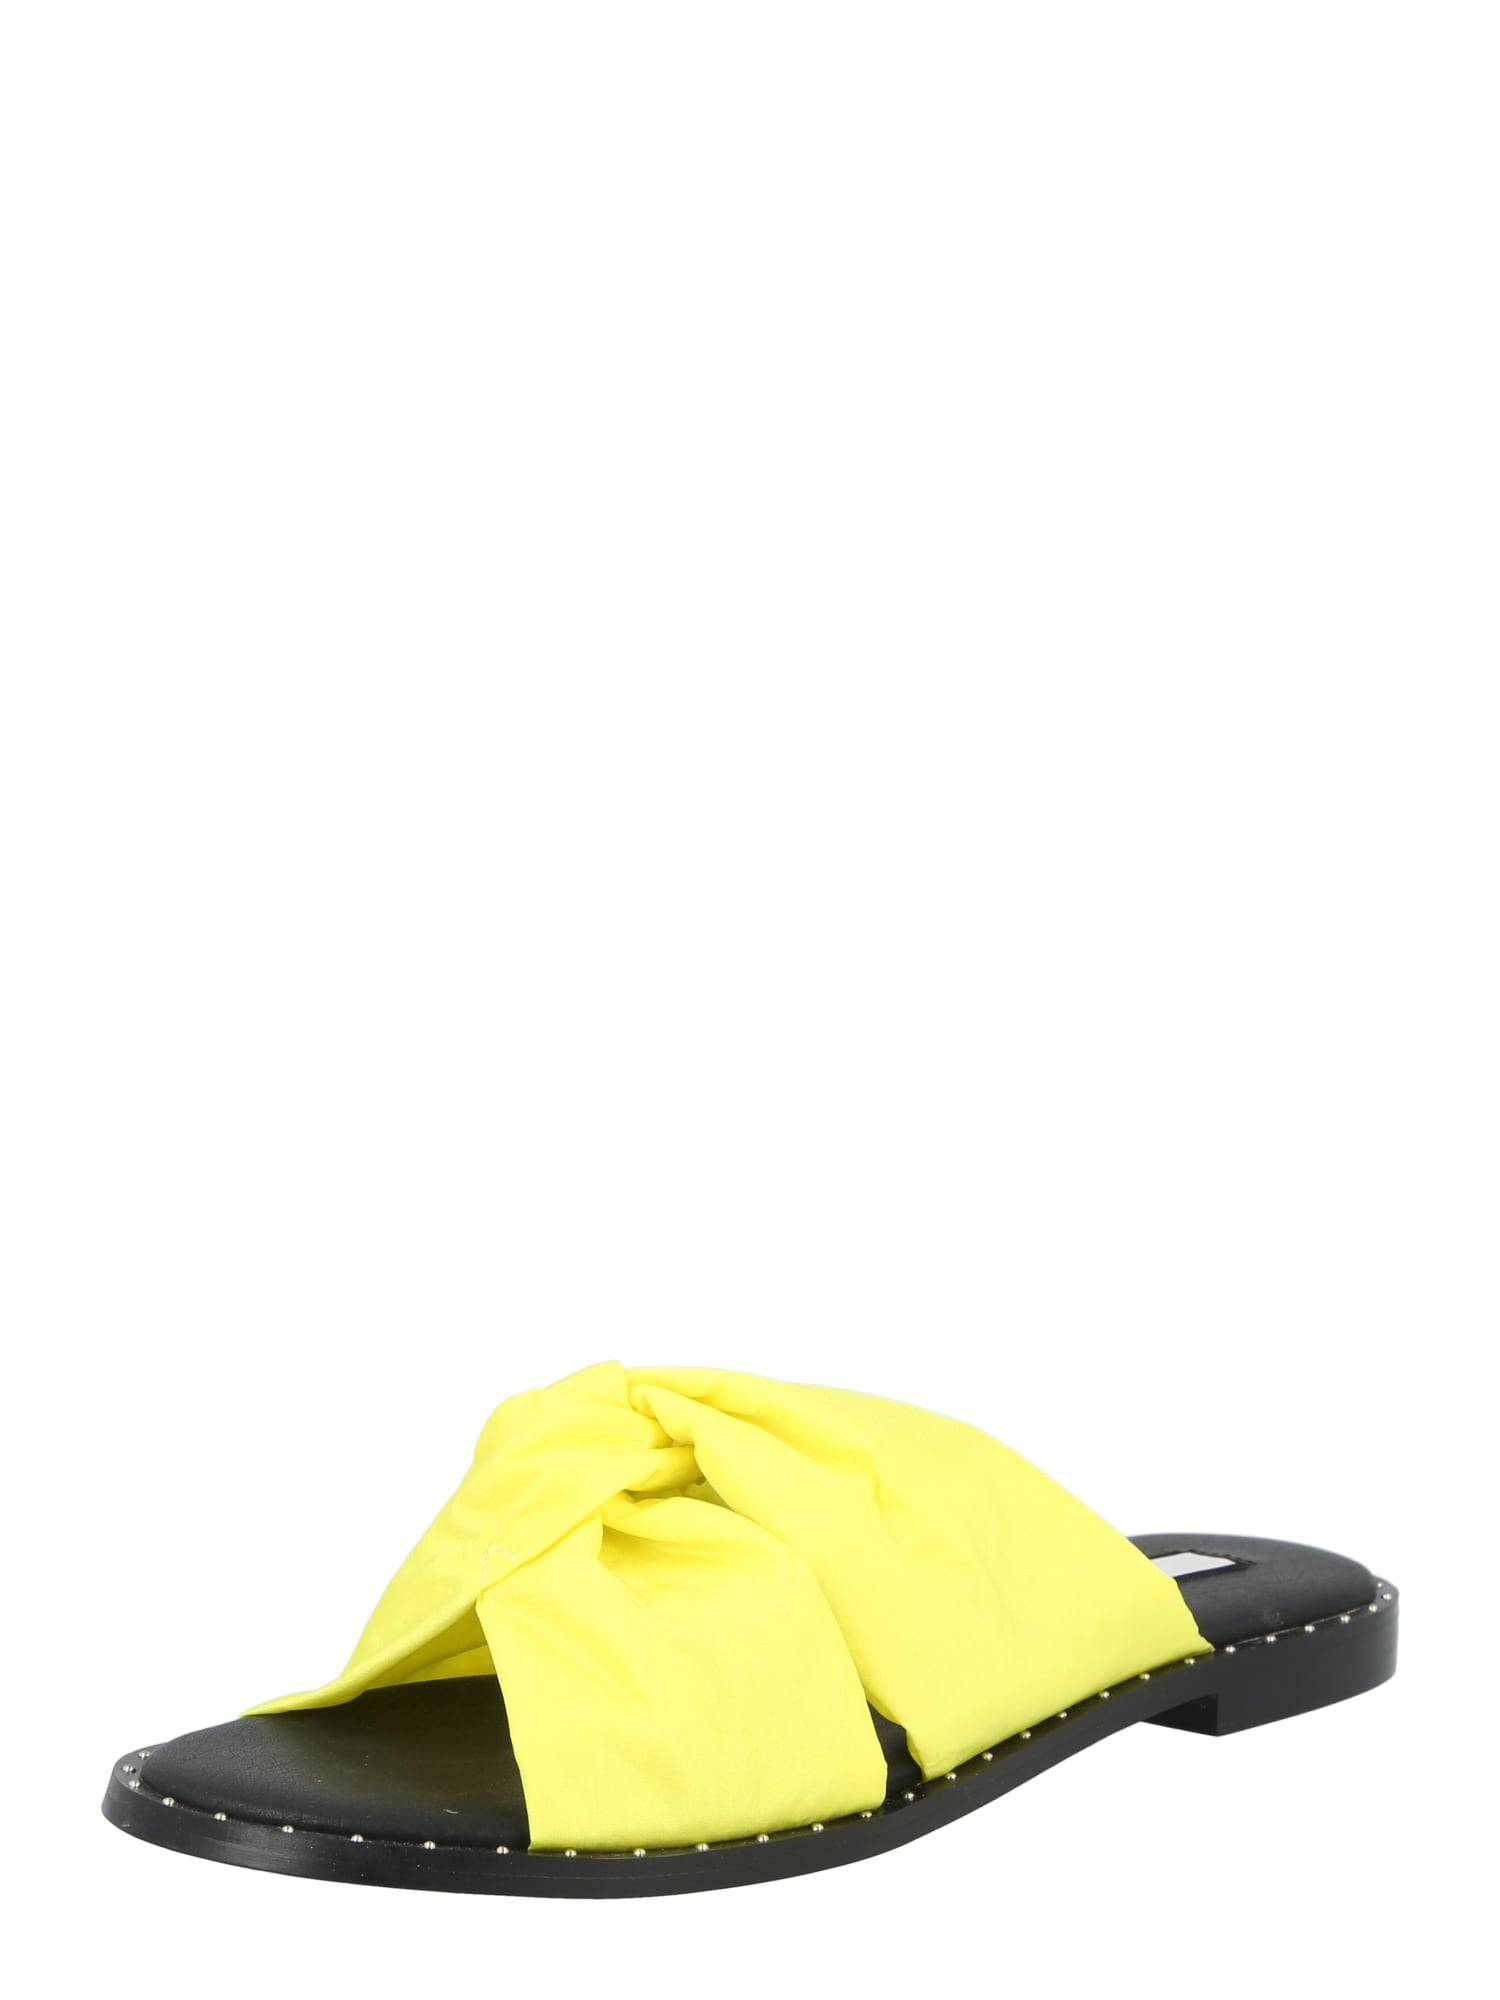 pepe jeans zoccoletto 'hayes' giallo